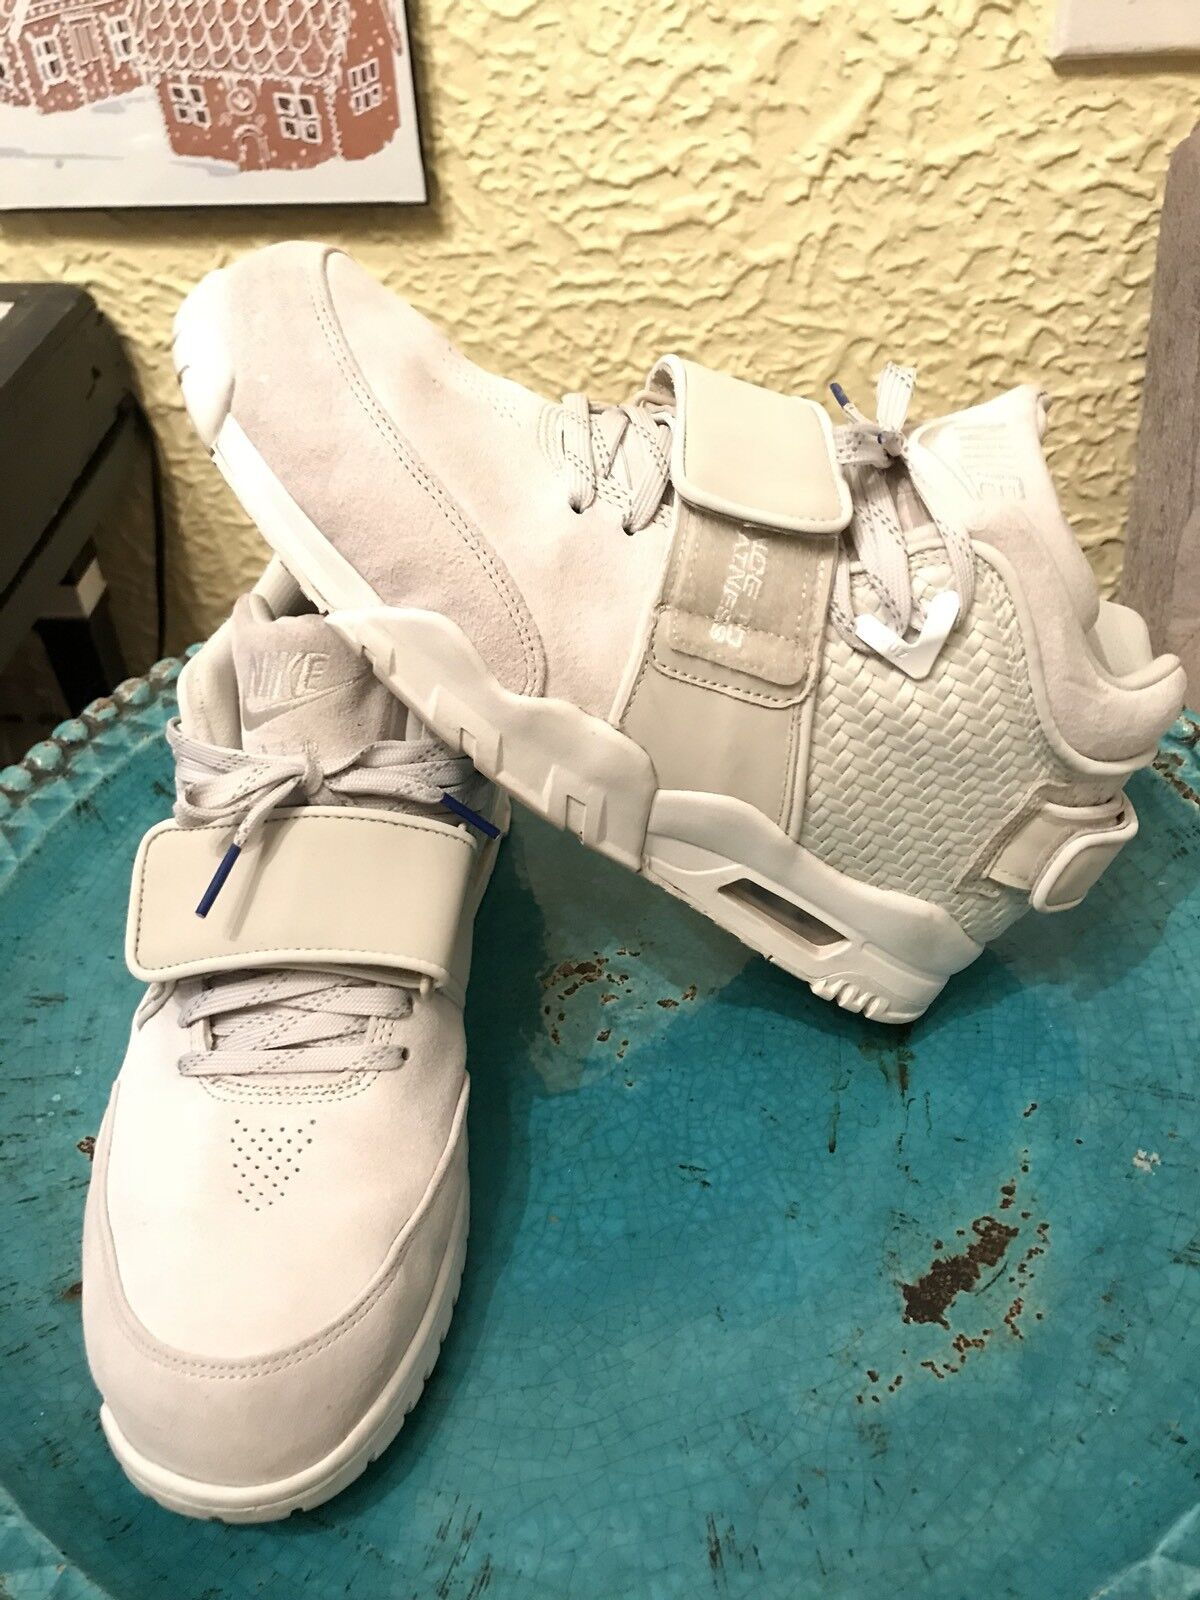 Nike Air Trainer Victor Cruz Light Bone sz 11  bo jackson 1 2 Yeezy Value Sv